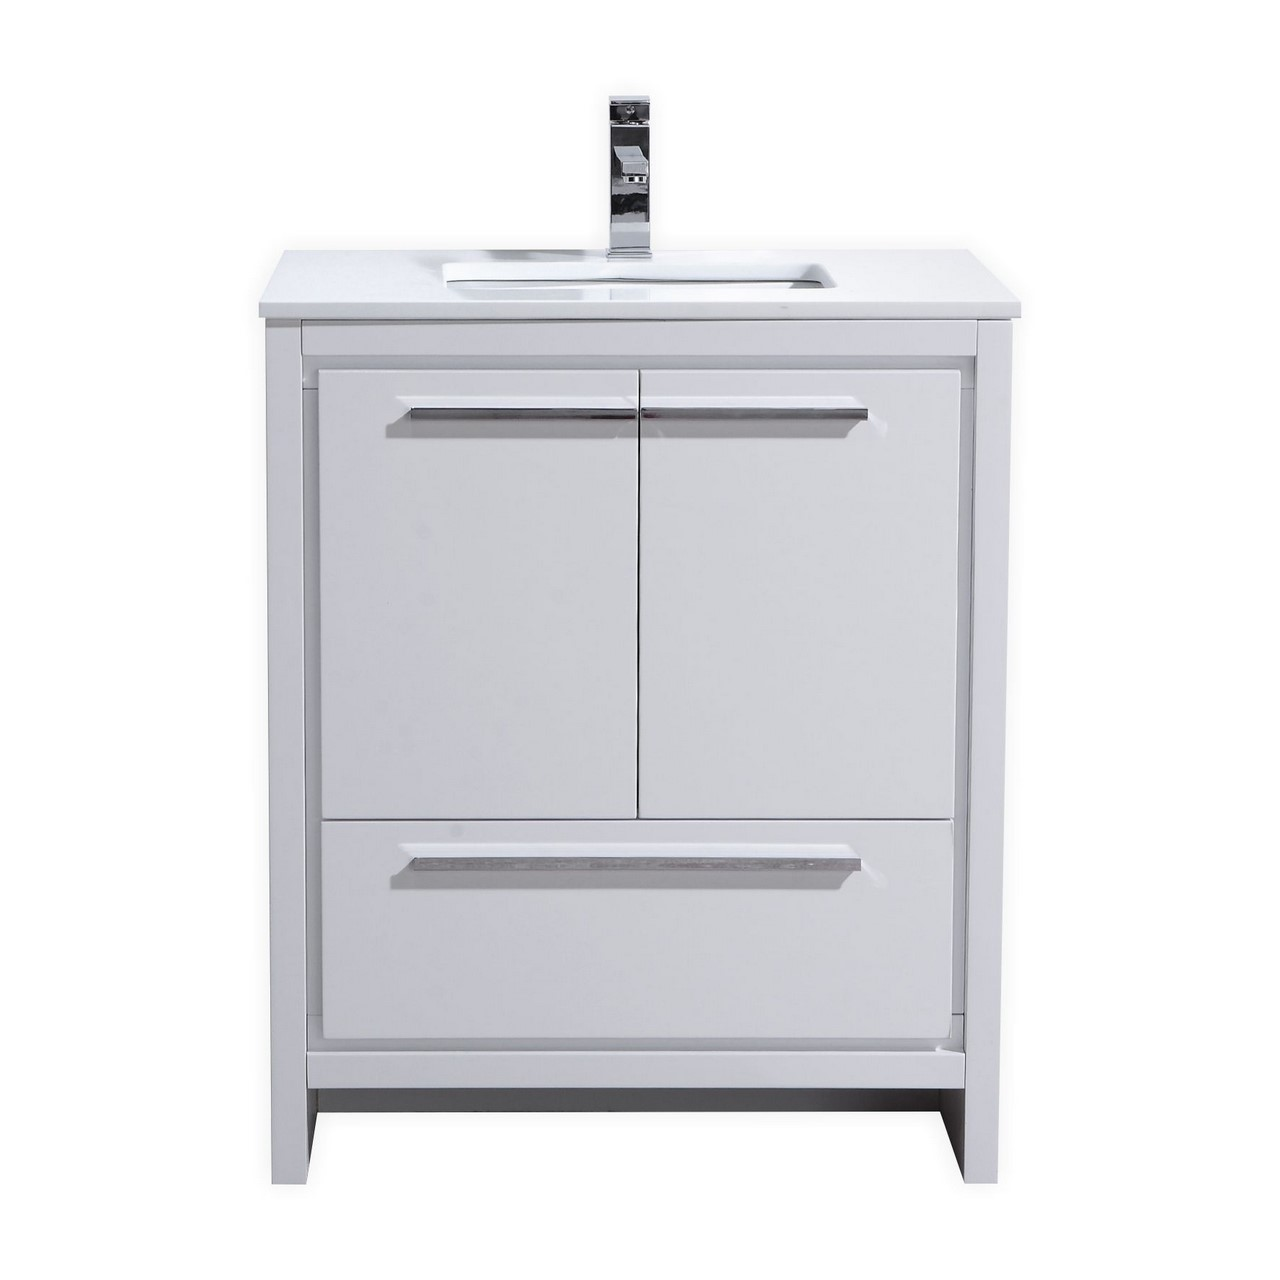 30 inch bathroom cabinet kubebath dolce 30 high gloss white modern bathroom vanity 15289